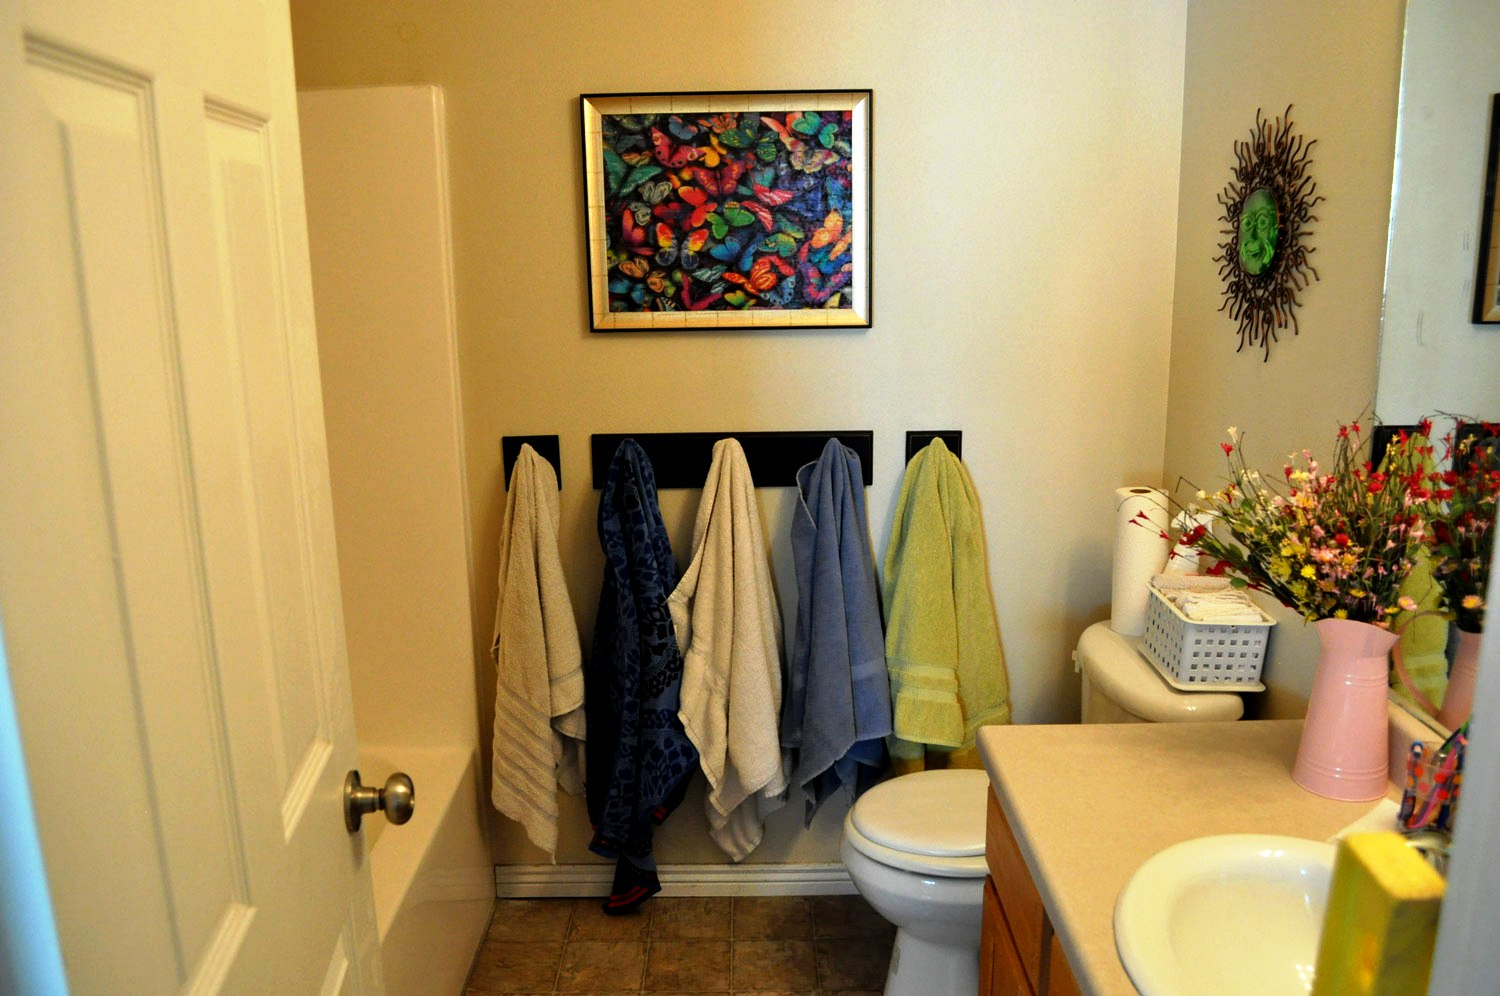 Unique Bathroom With Colorful Painting also Towel Hooks and Toilet